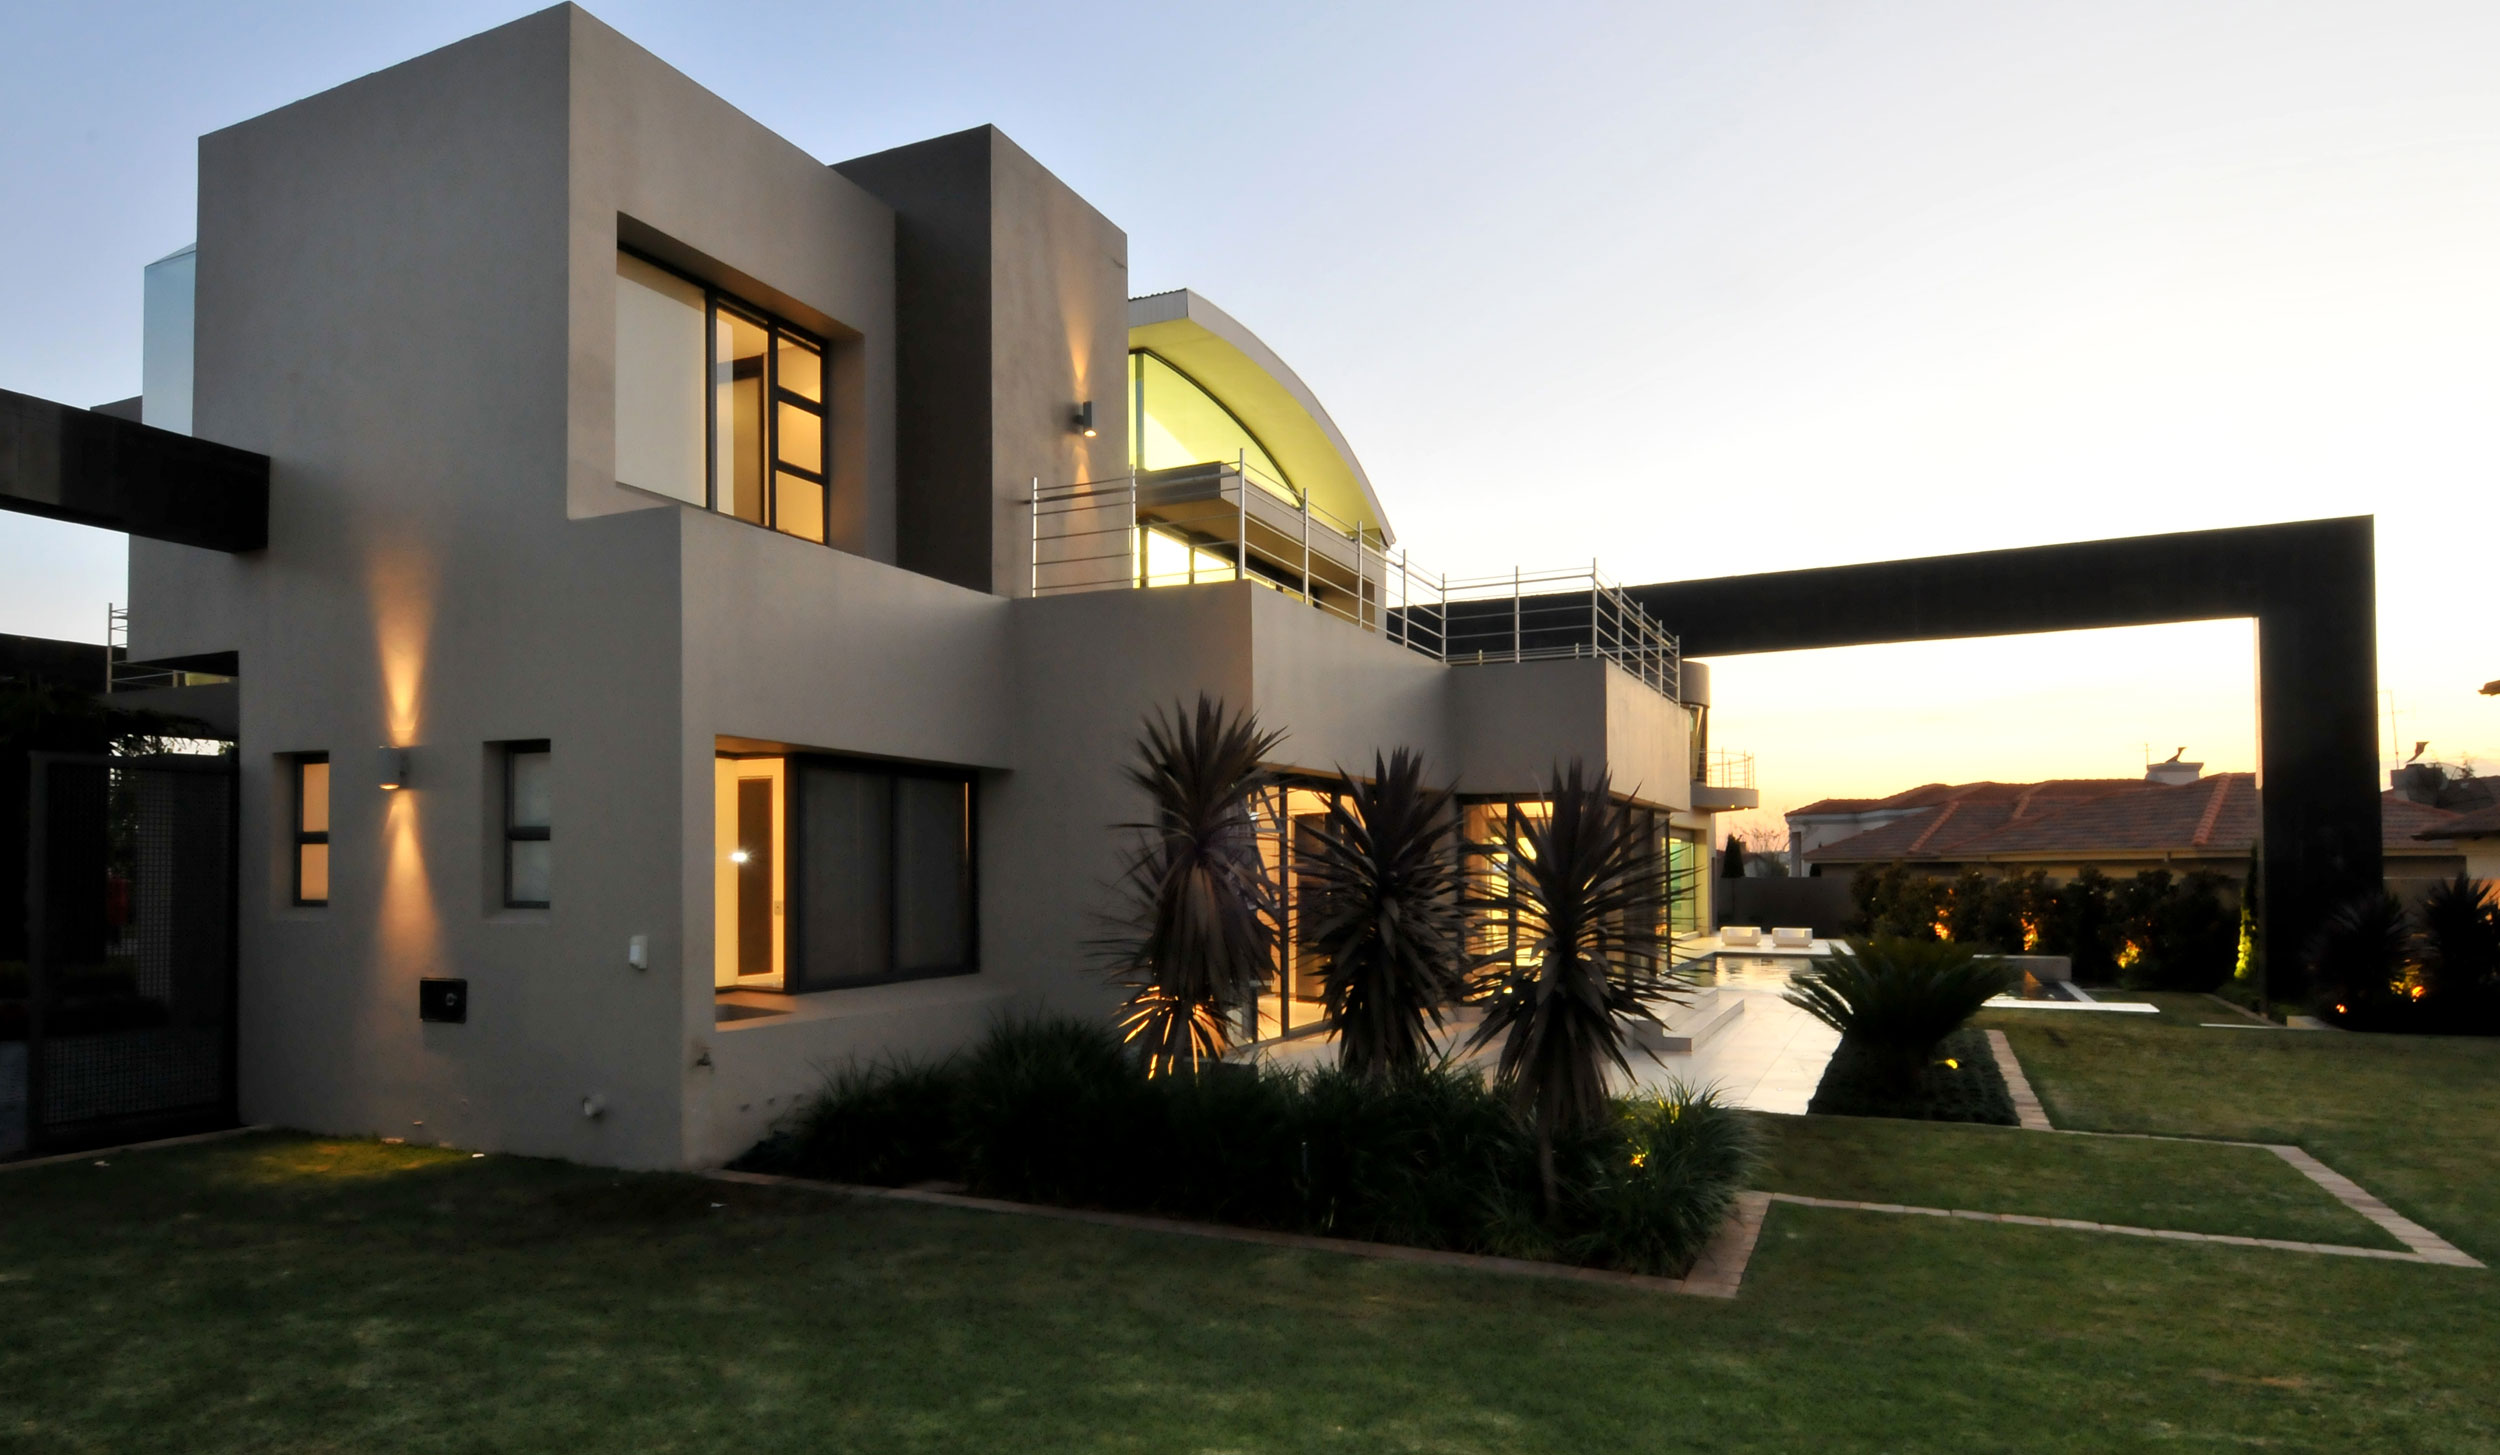 Cal kempton park by nico van der meulen architecture for African house designs